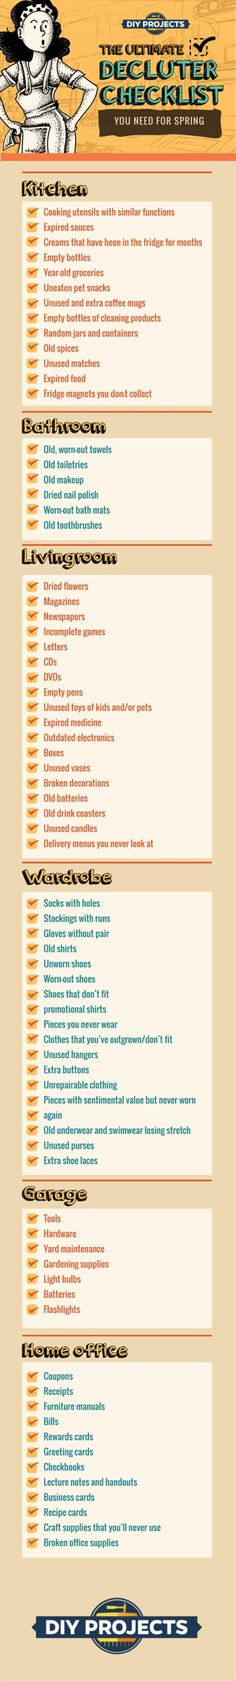 Checklist   10 Essential Cleaning Checklist Items for Spring   DIY Projects